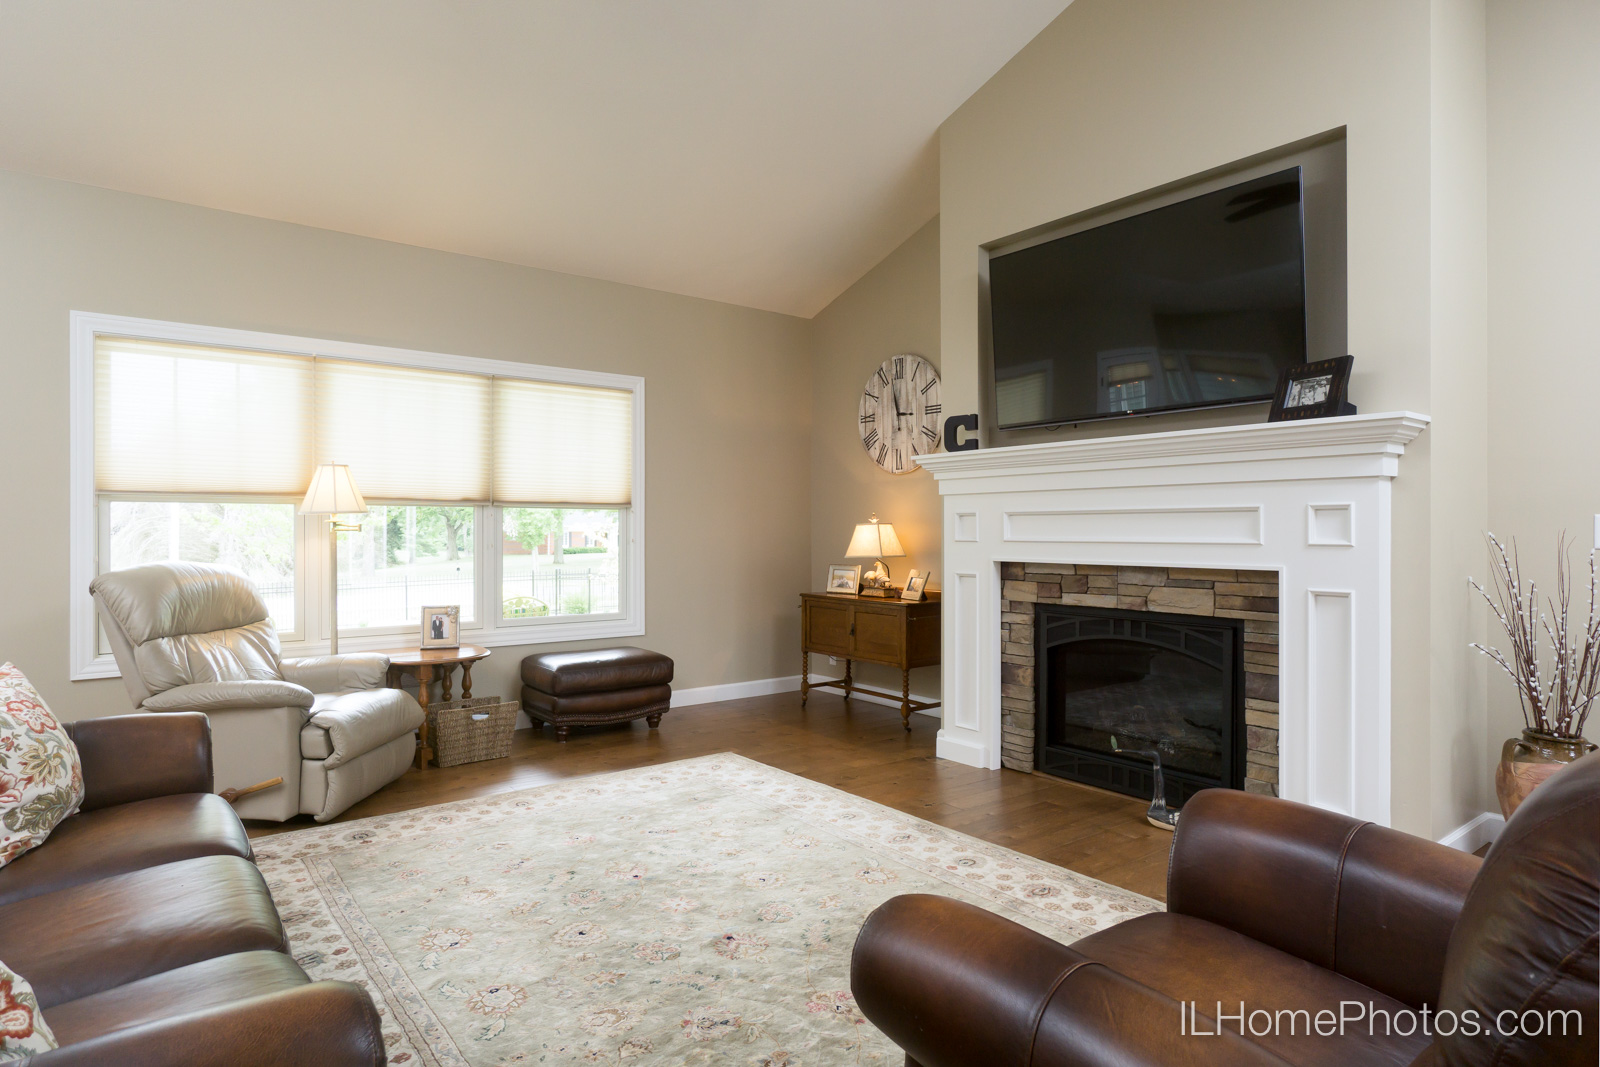 Interior living room photograph for real estate in Springfield, IL :: Illinois Home Photography by Michael Gowin, Lincoln, IL